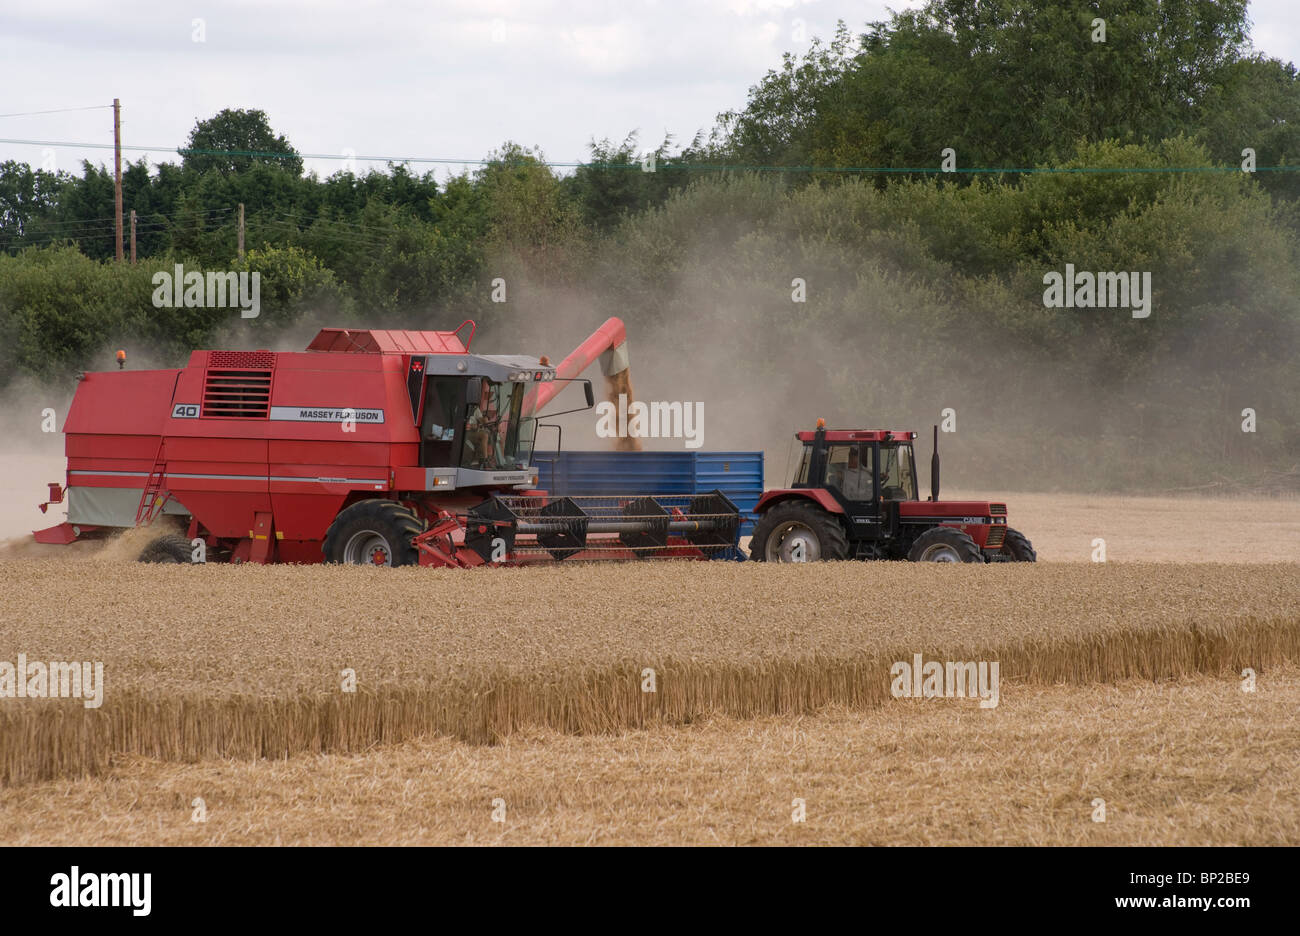 LOADING WHEAT IN THE FIELD - Stock Image